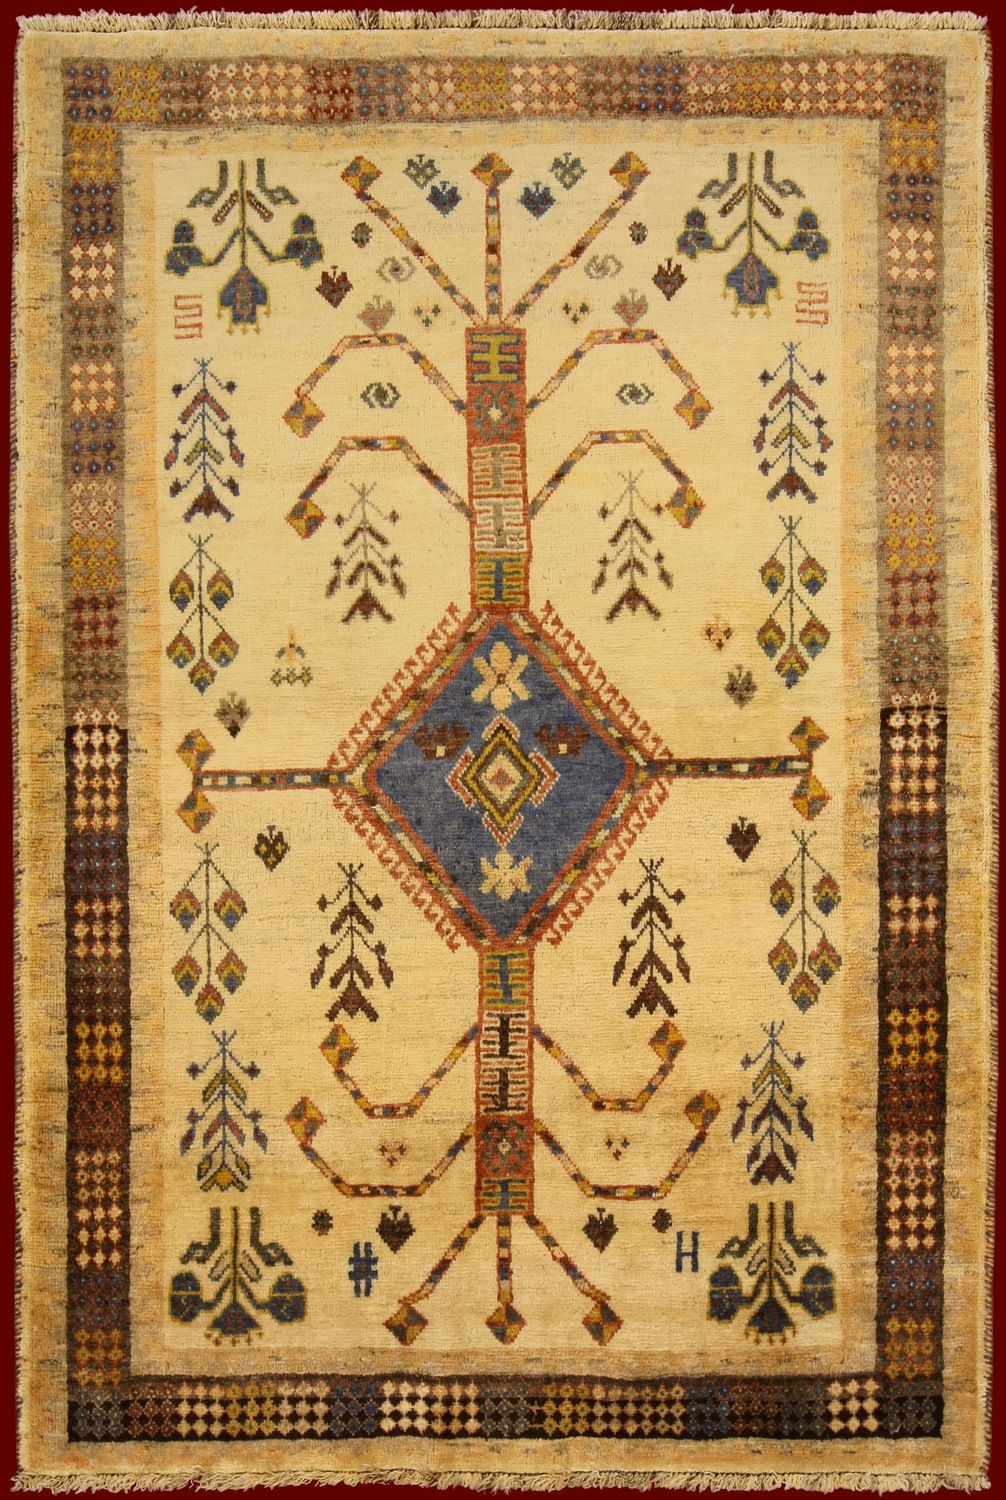 Traditional Rug Patterned Wool Rectangular 141306140945 Inside Traditional Carpets (Image 14 of 15)